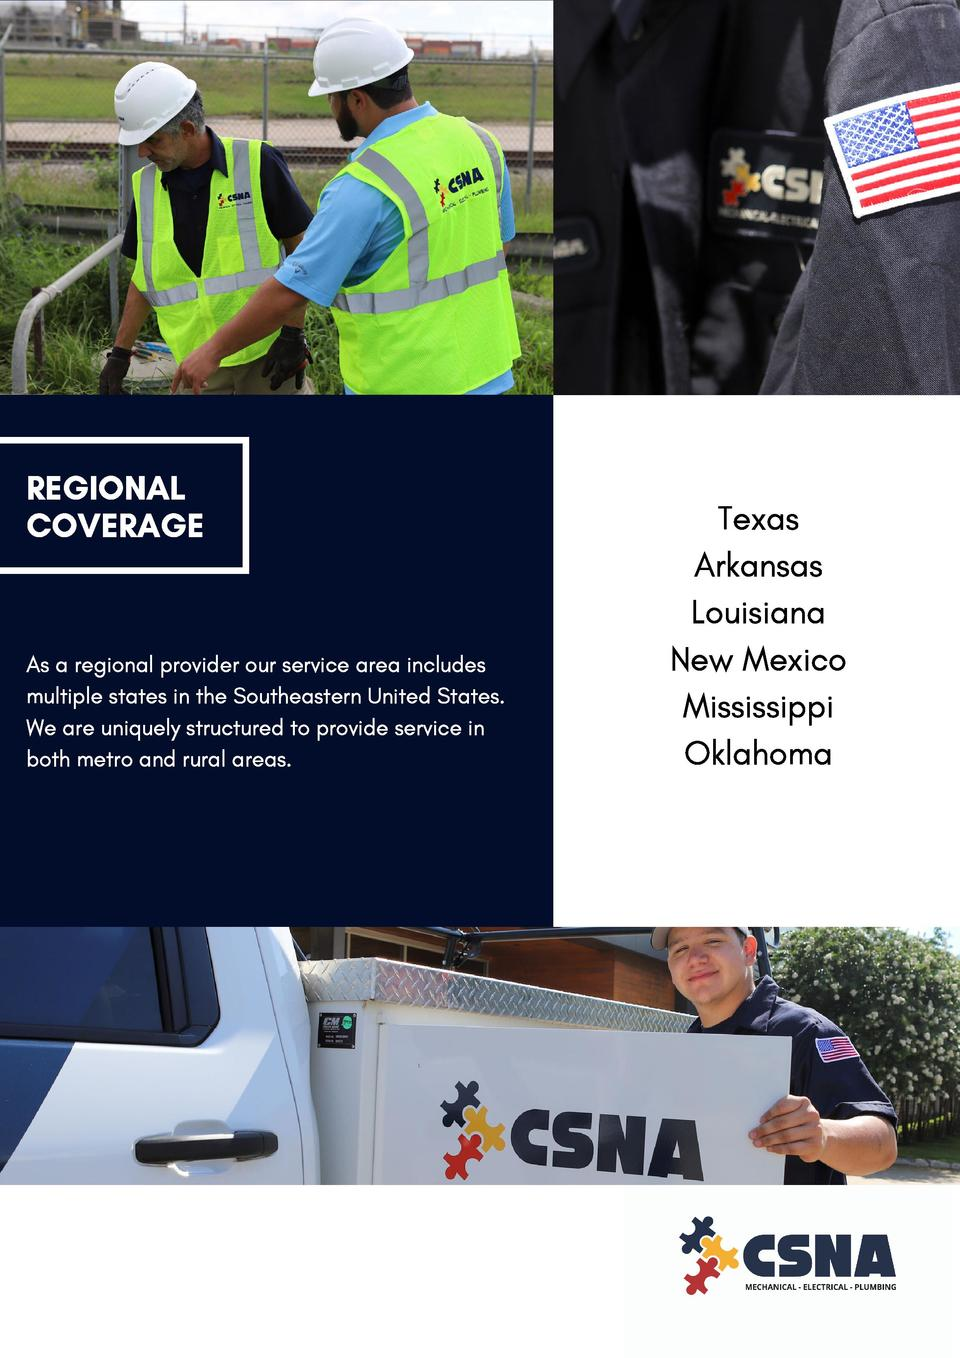 REGIONAL COVERAGE  Texas Arkansas Louisiana  As a regional provider our service area includes multiple states in the South...